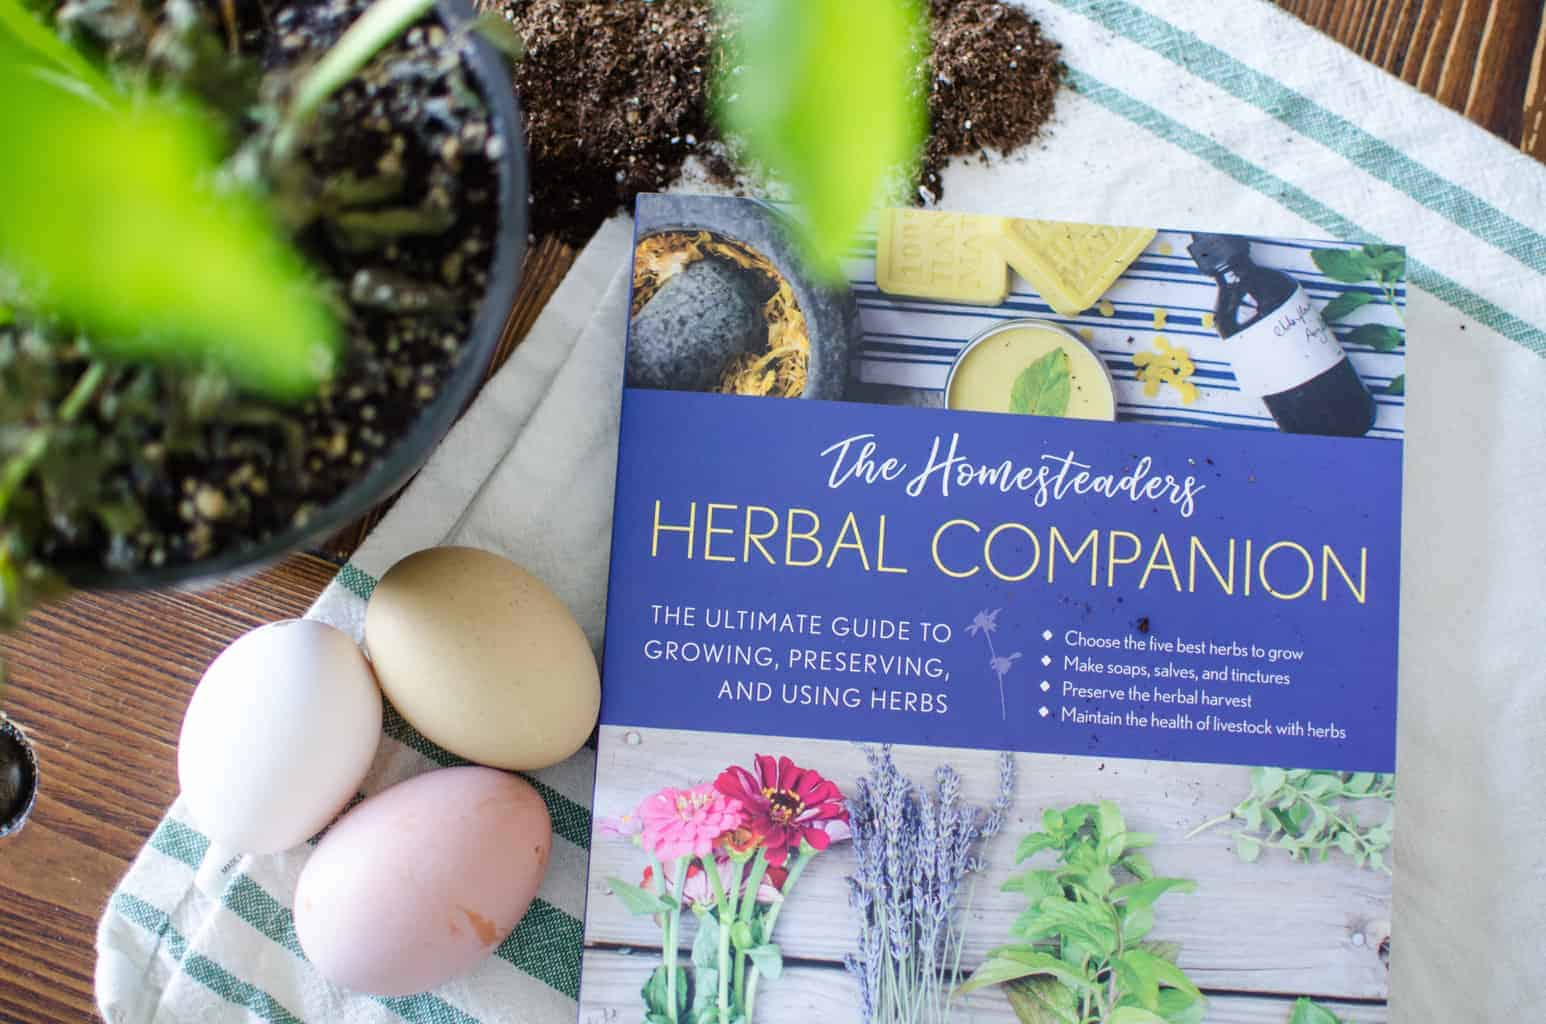 The Homesteader's Herbal Companion is Finally Here!